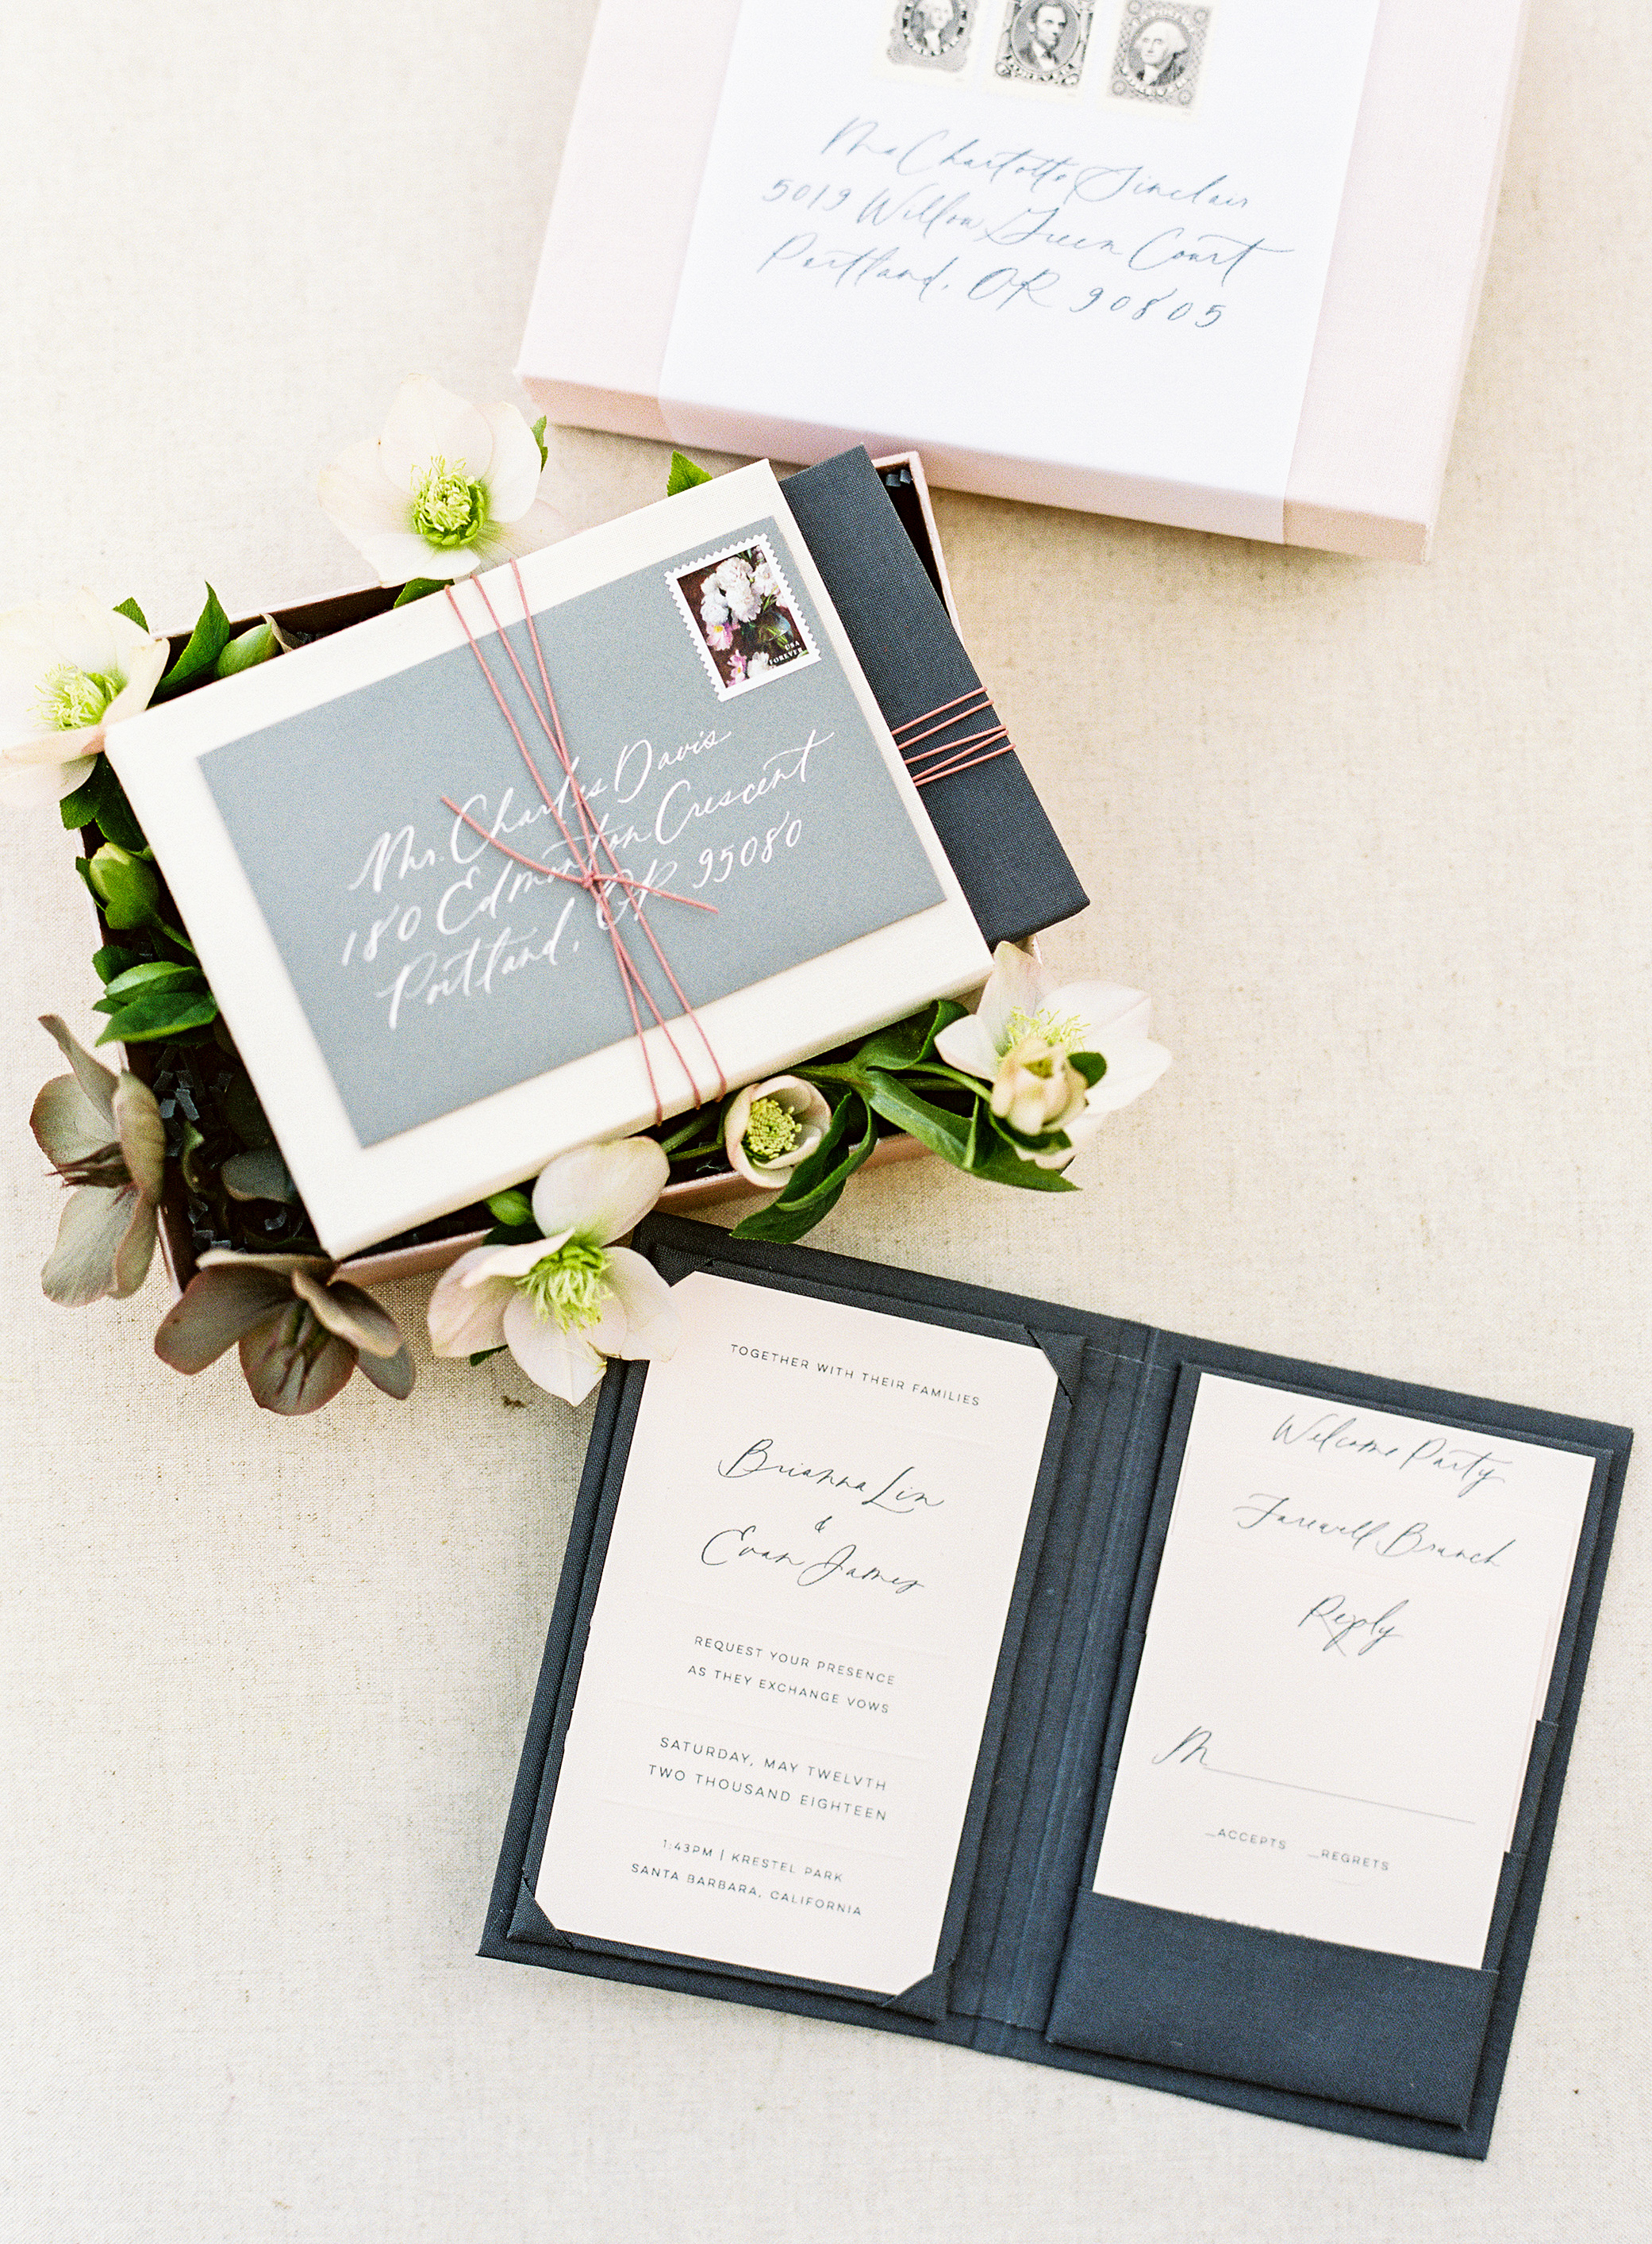 booklet stationery idea in boxed set